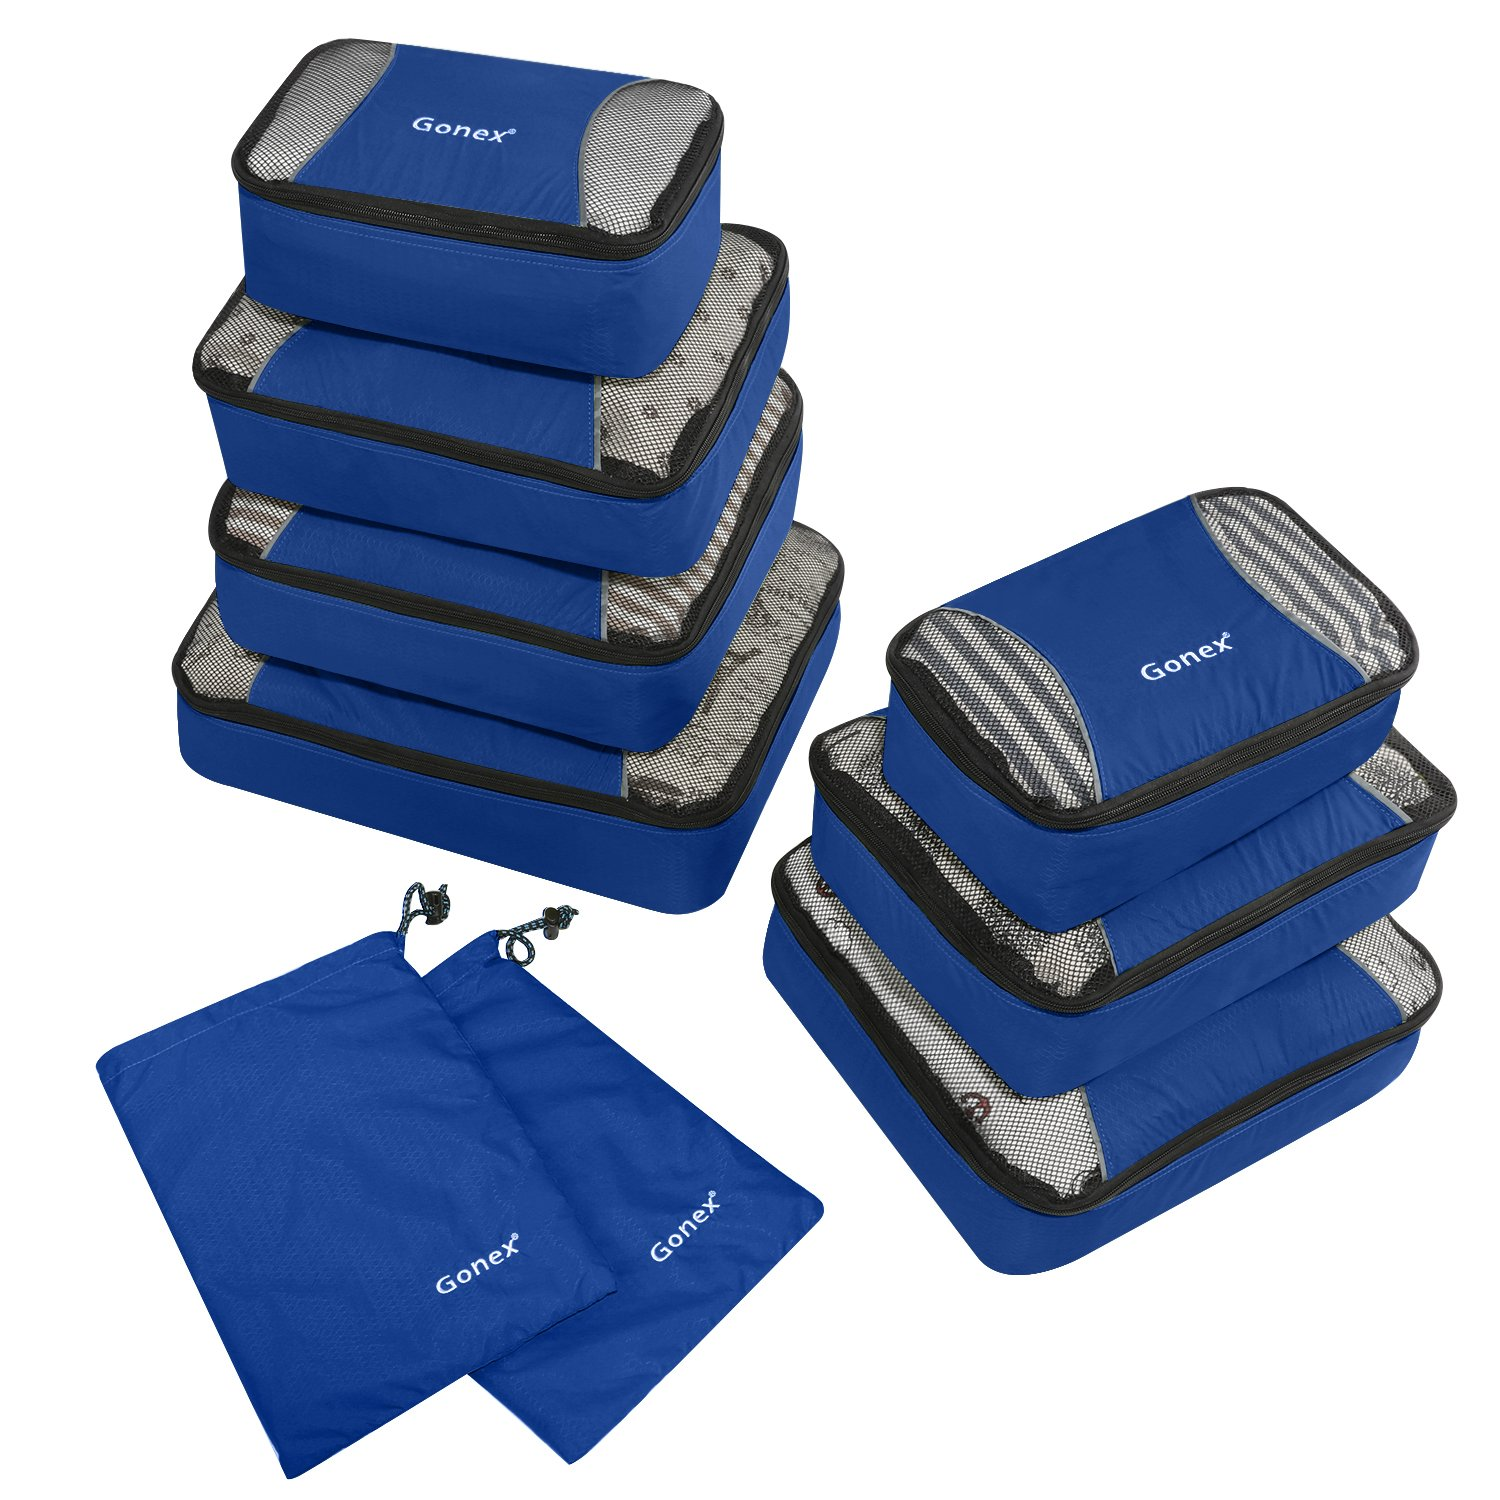 Gonex Packing Cubes Set 9PCs Travel Organizers Luggage Organizers Pouches Including Laundry Bag Deep Blue product image